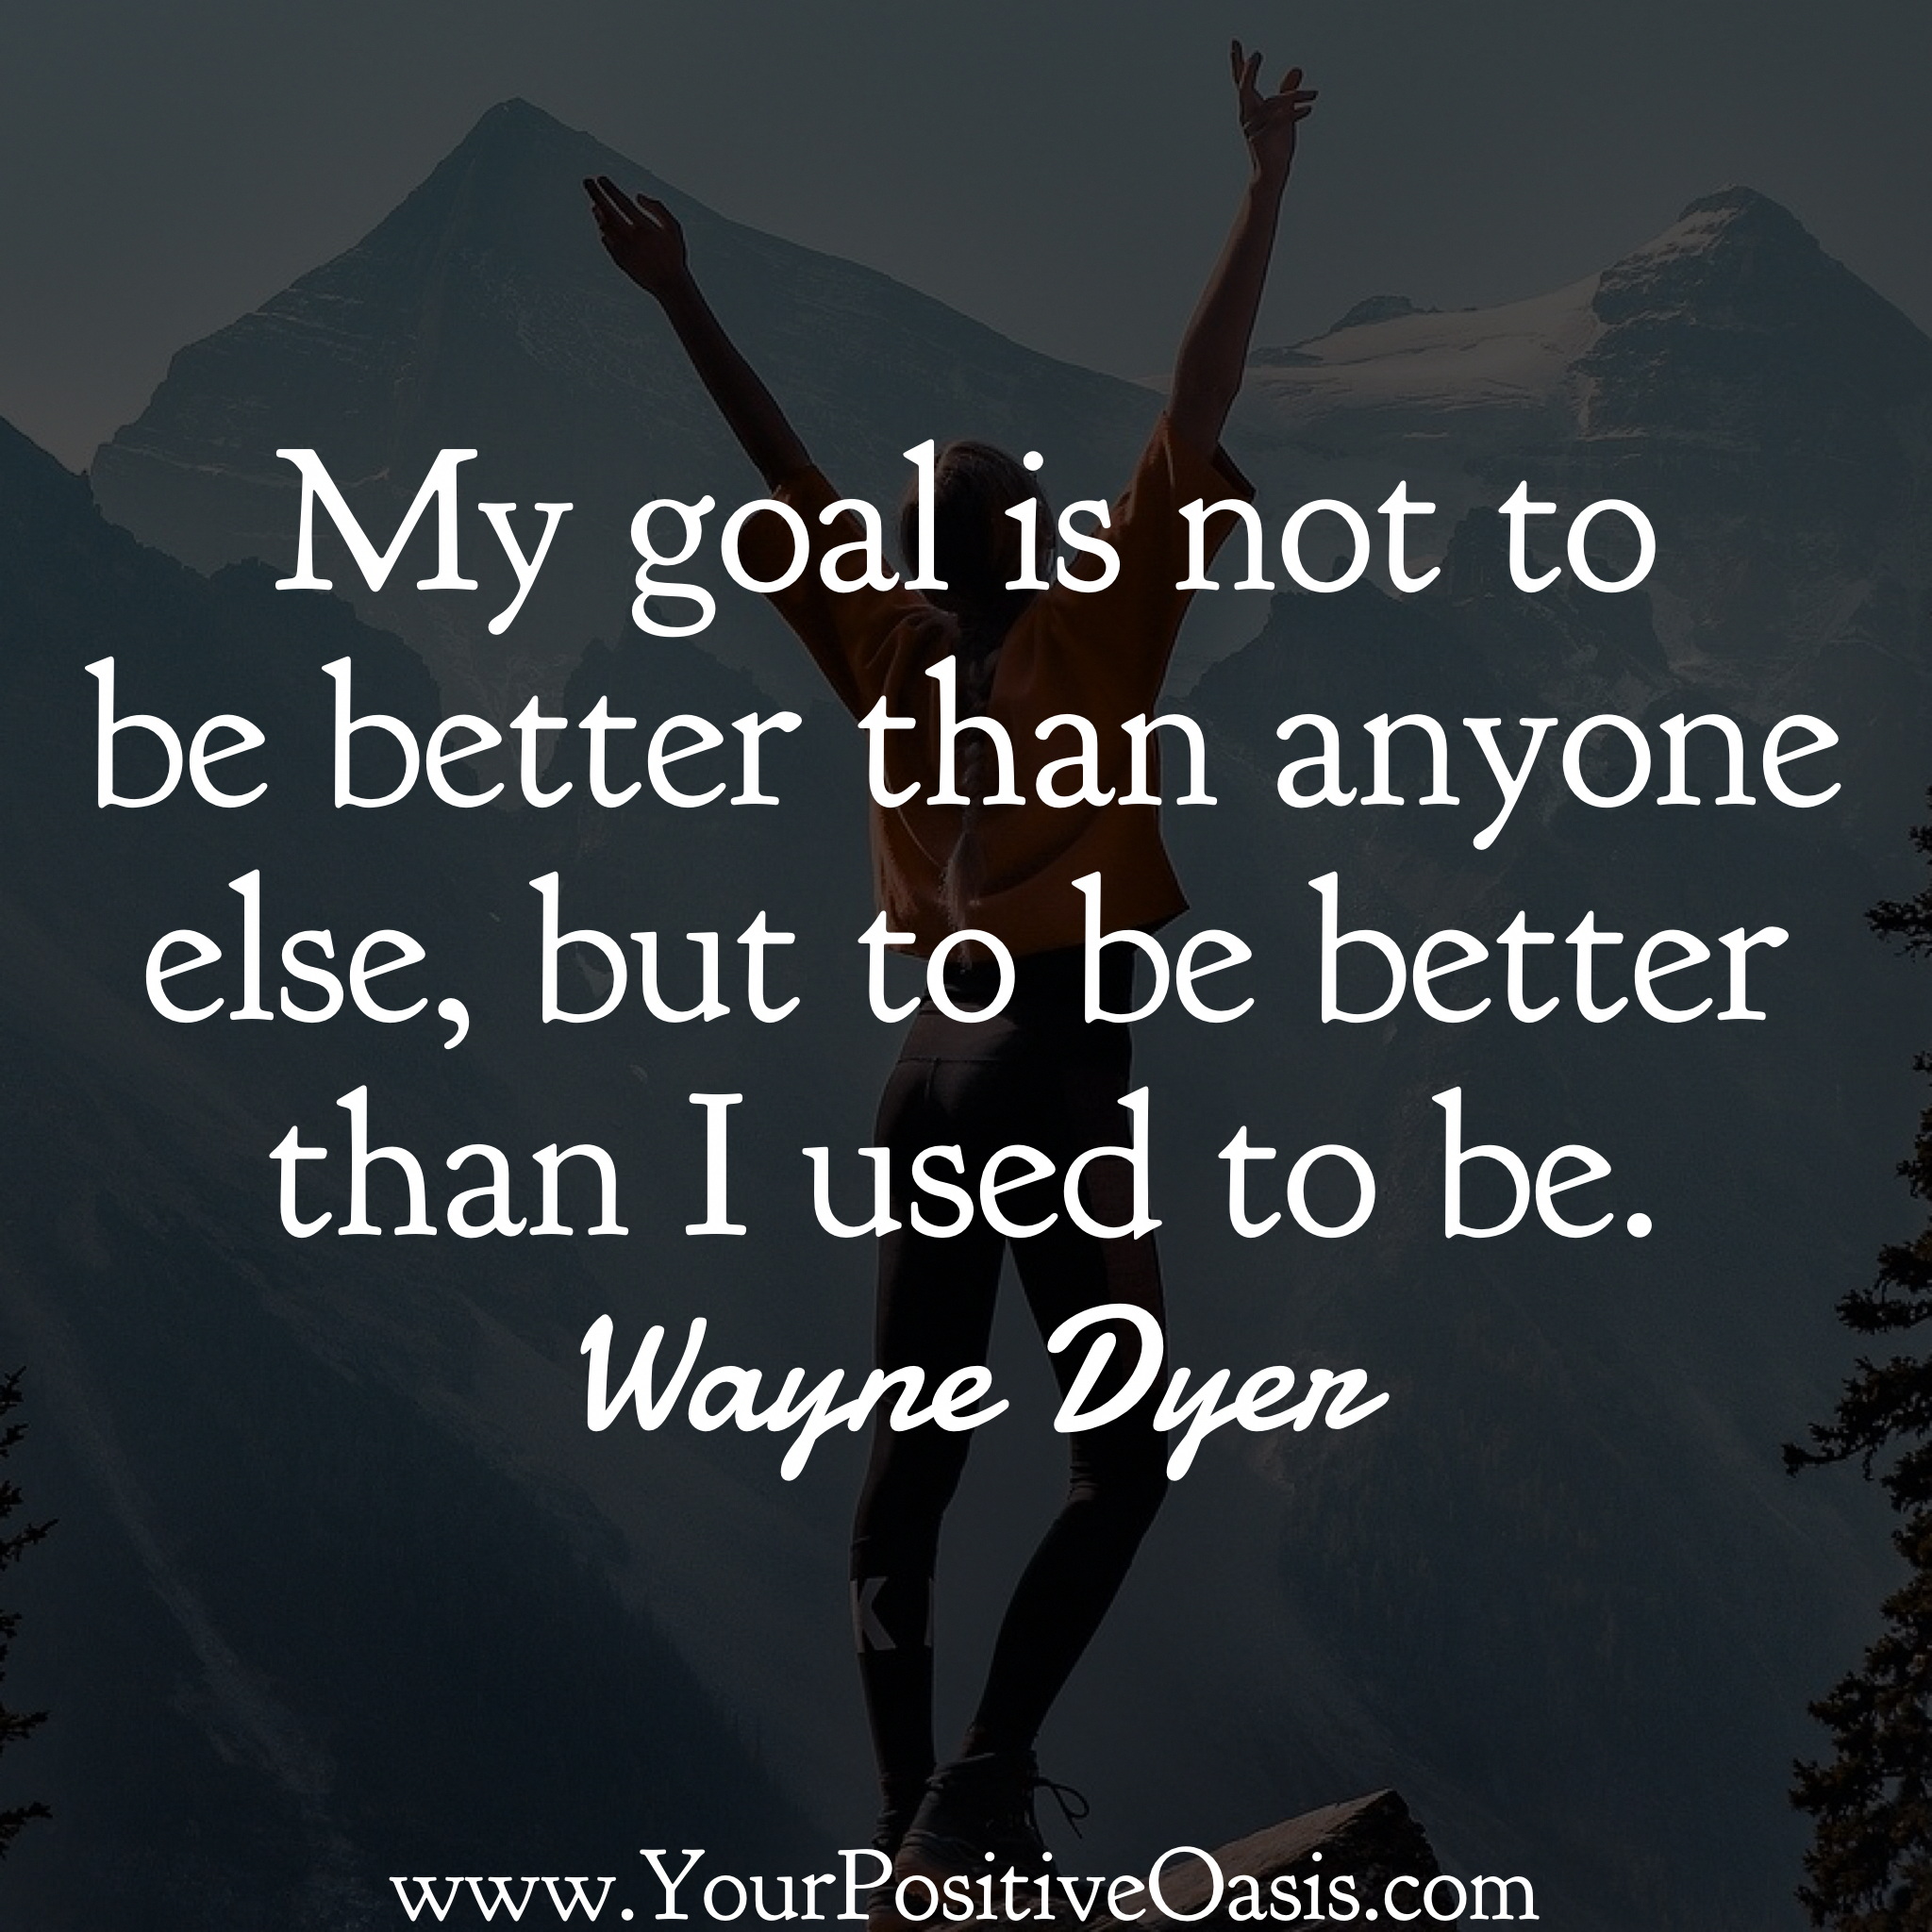 My goal is not to be better that anyone else, but to be better than used to be. Wayne Dyer #quotes #waynedyerquotes